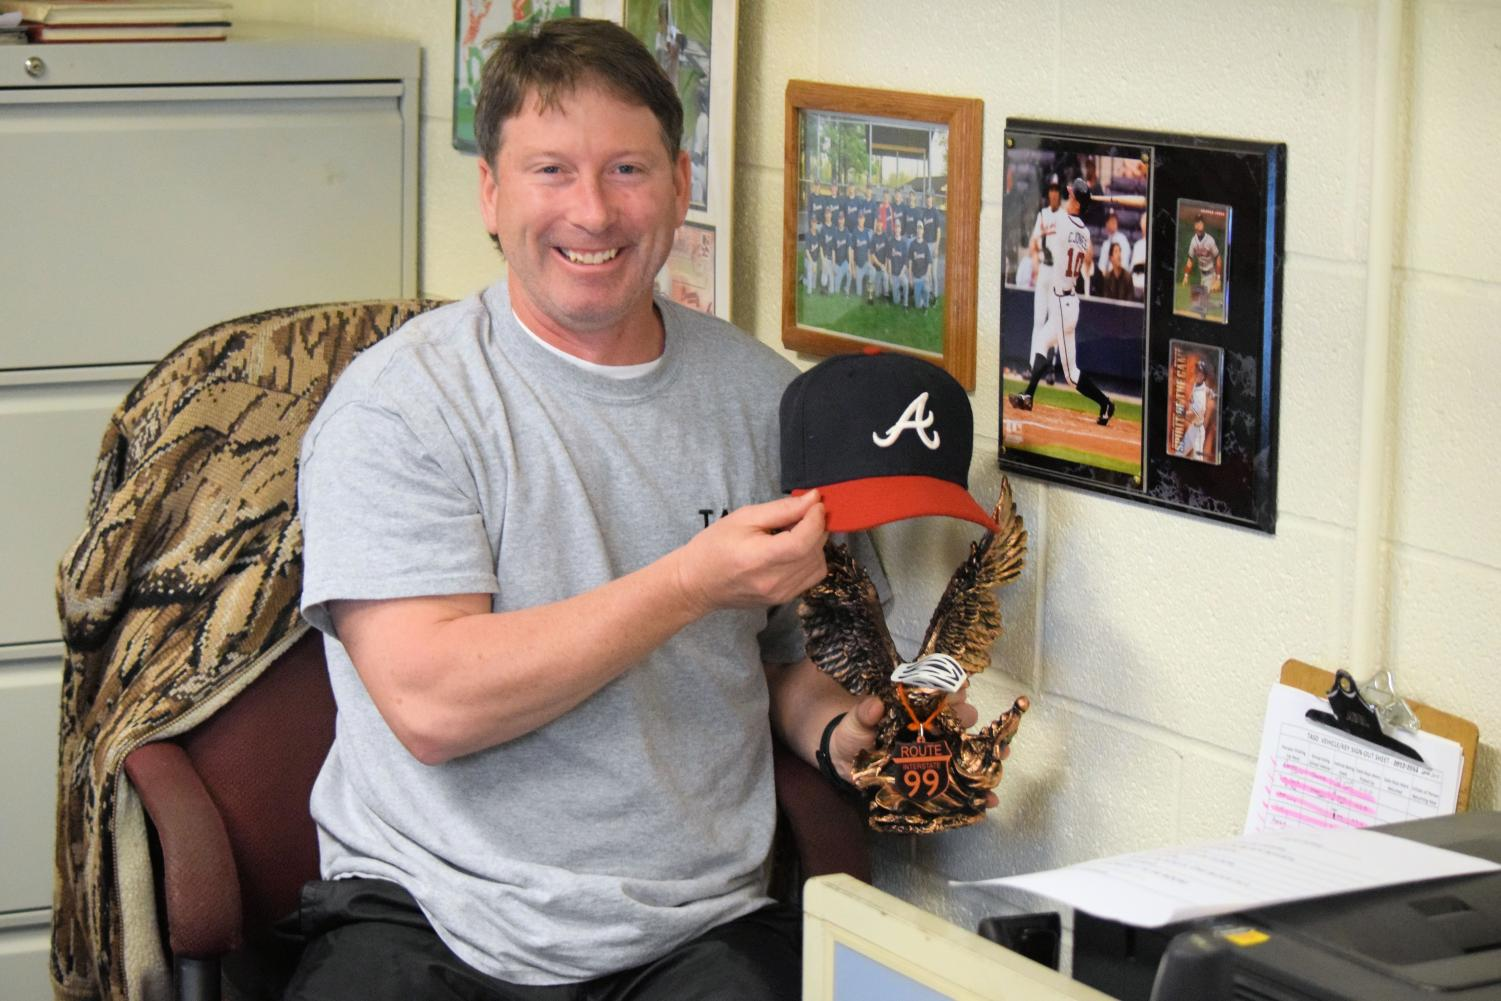 Jimmy Coleman shows off some of his favorite Atlanta Braves items in his office